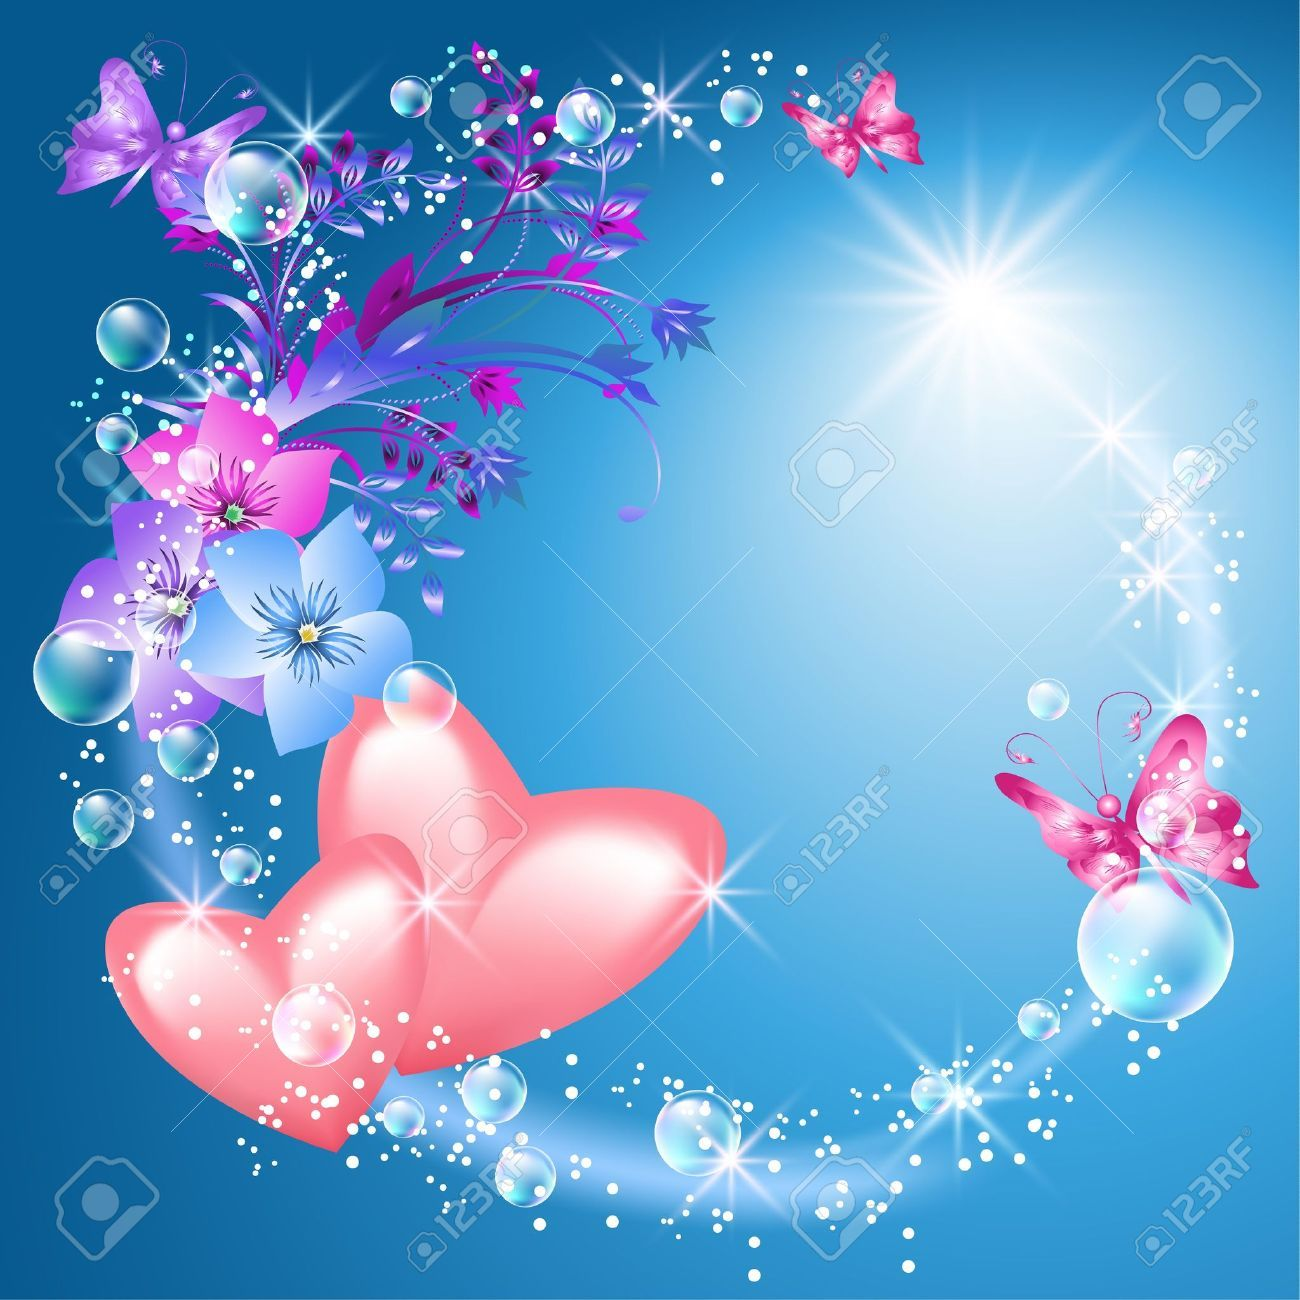 hearts and flowers background Google Search 1 Hearts&Love